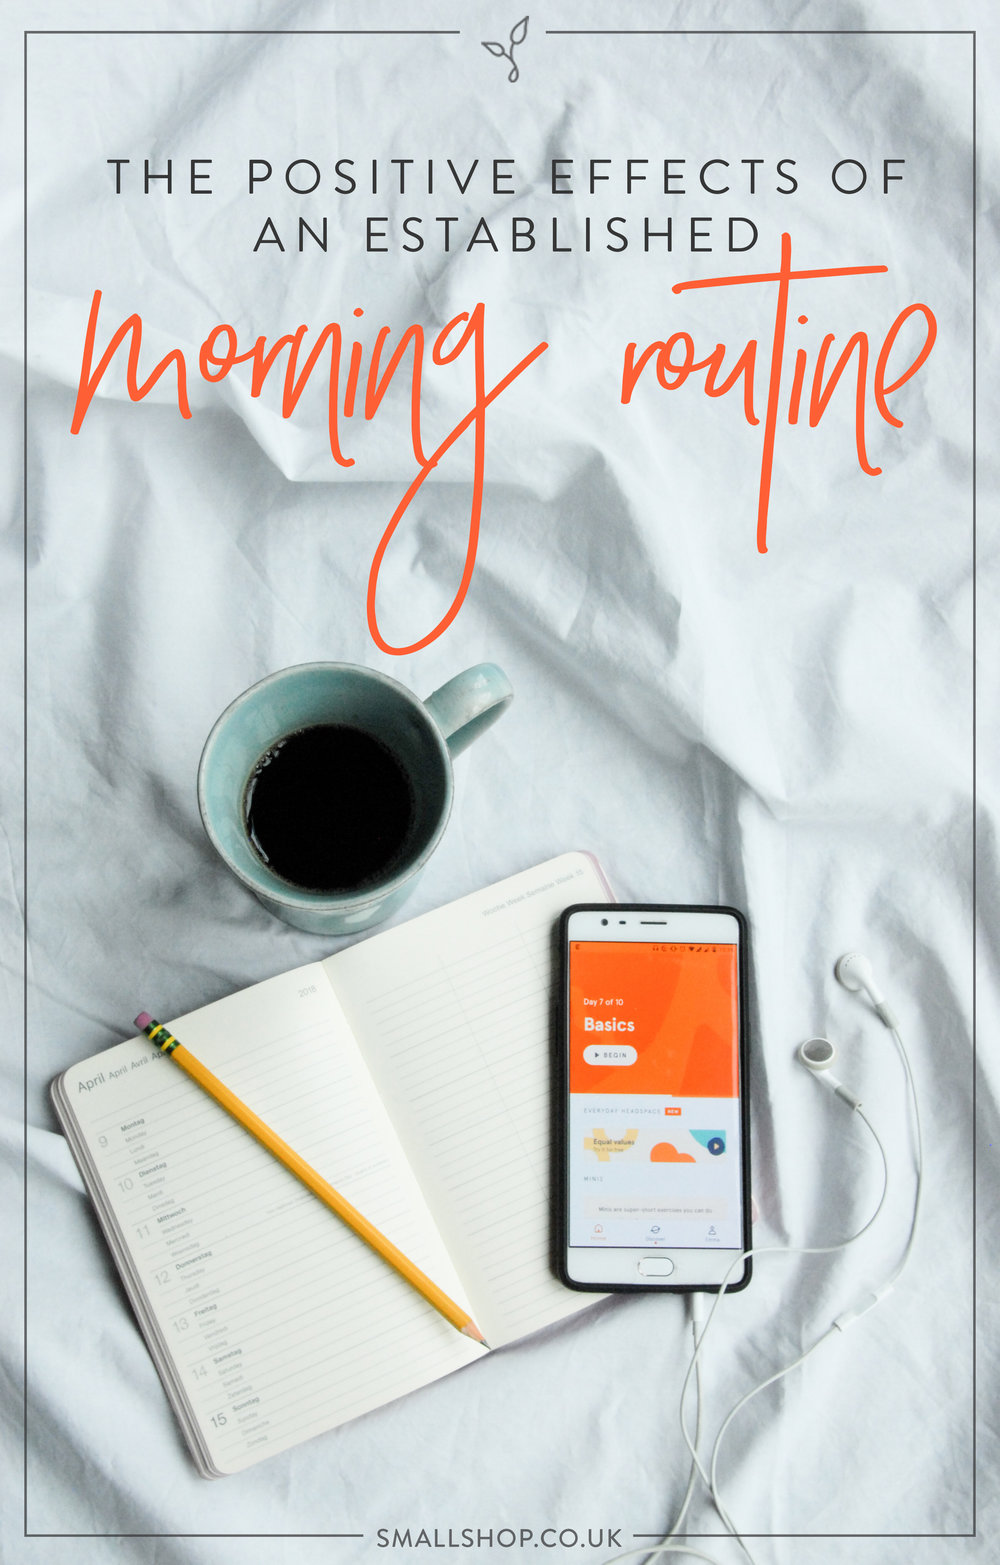 The positive effects of an established morning routine